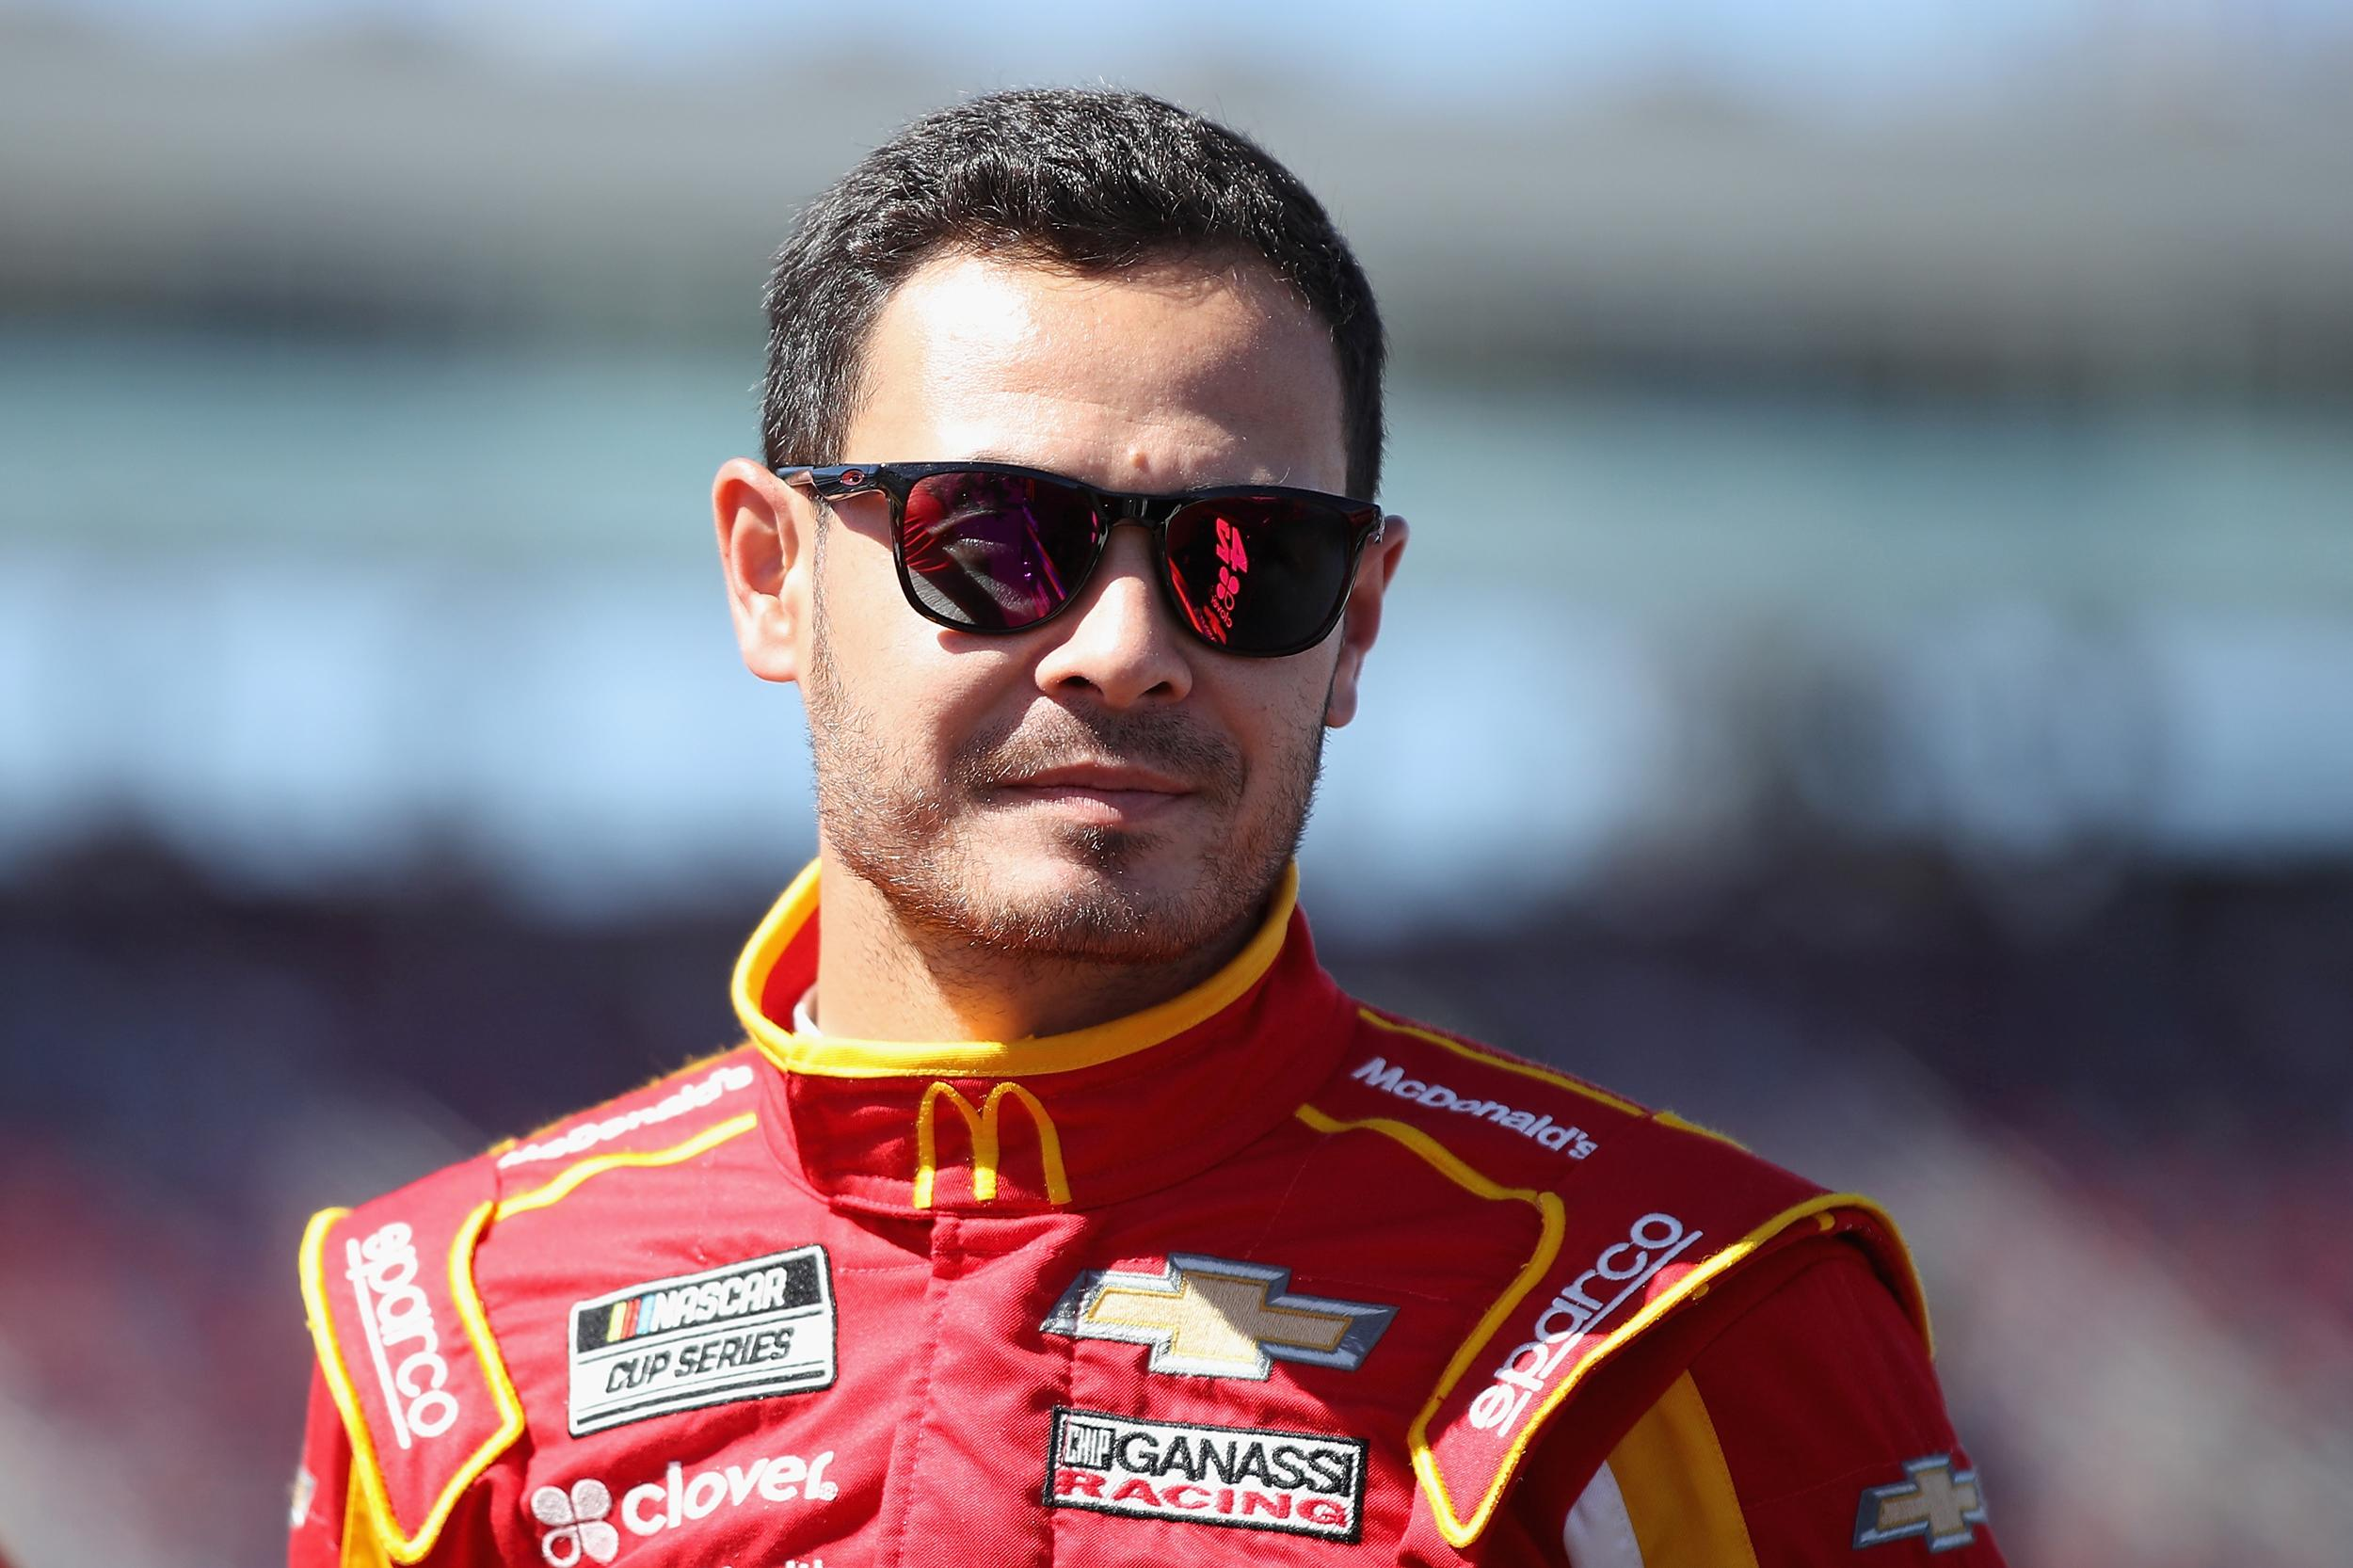 Larson suspended by NASCAR for use of racial slur during esports event